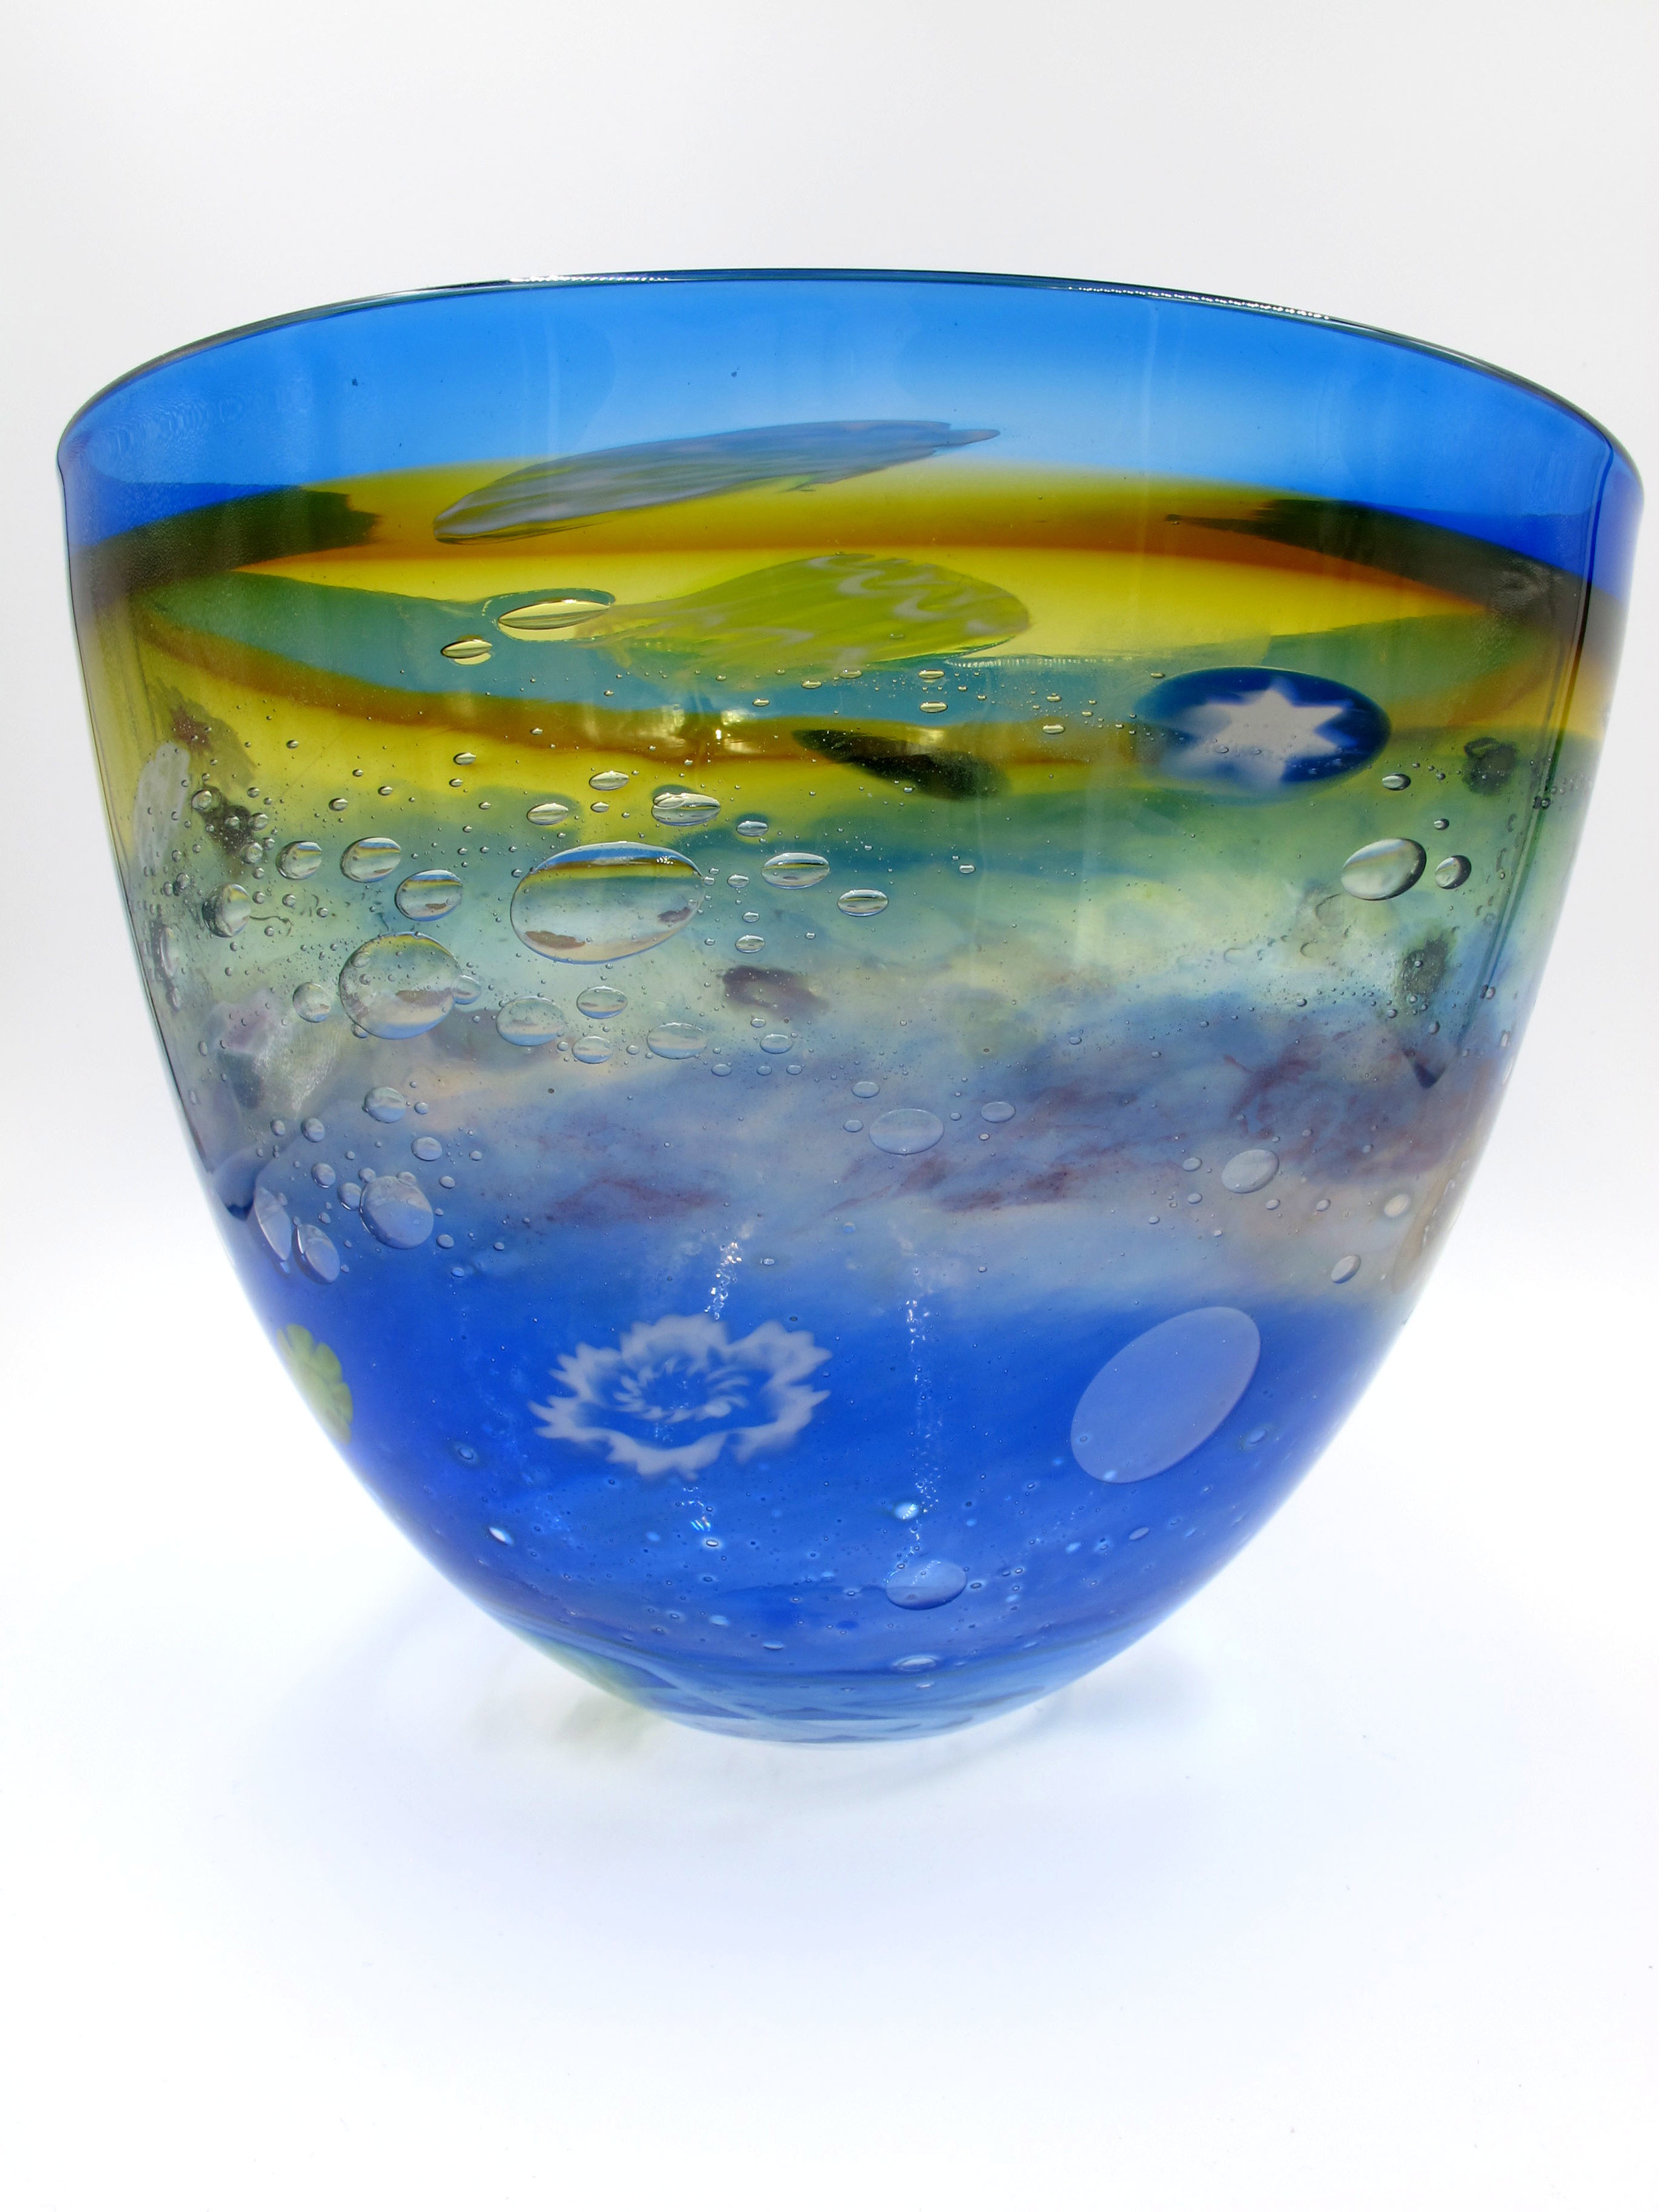 Handblown glass from bowl